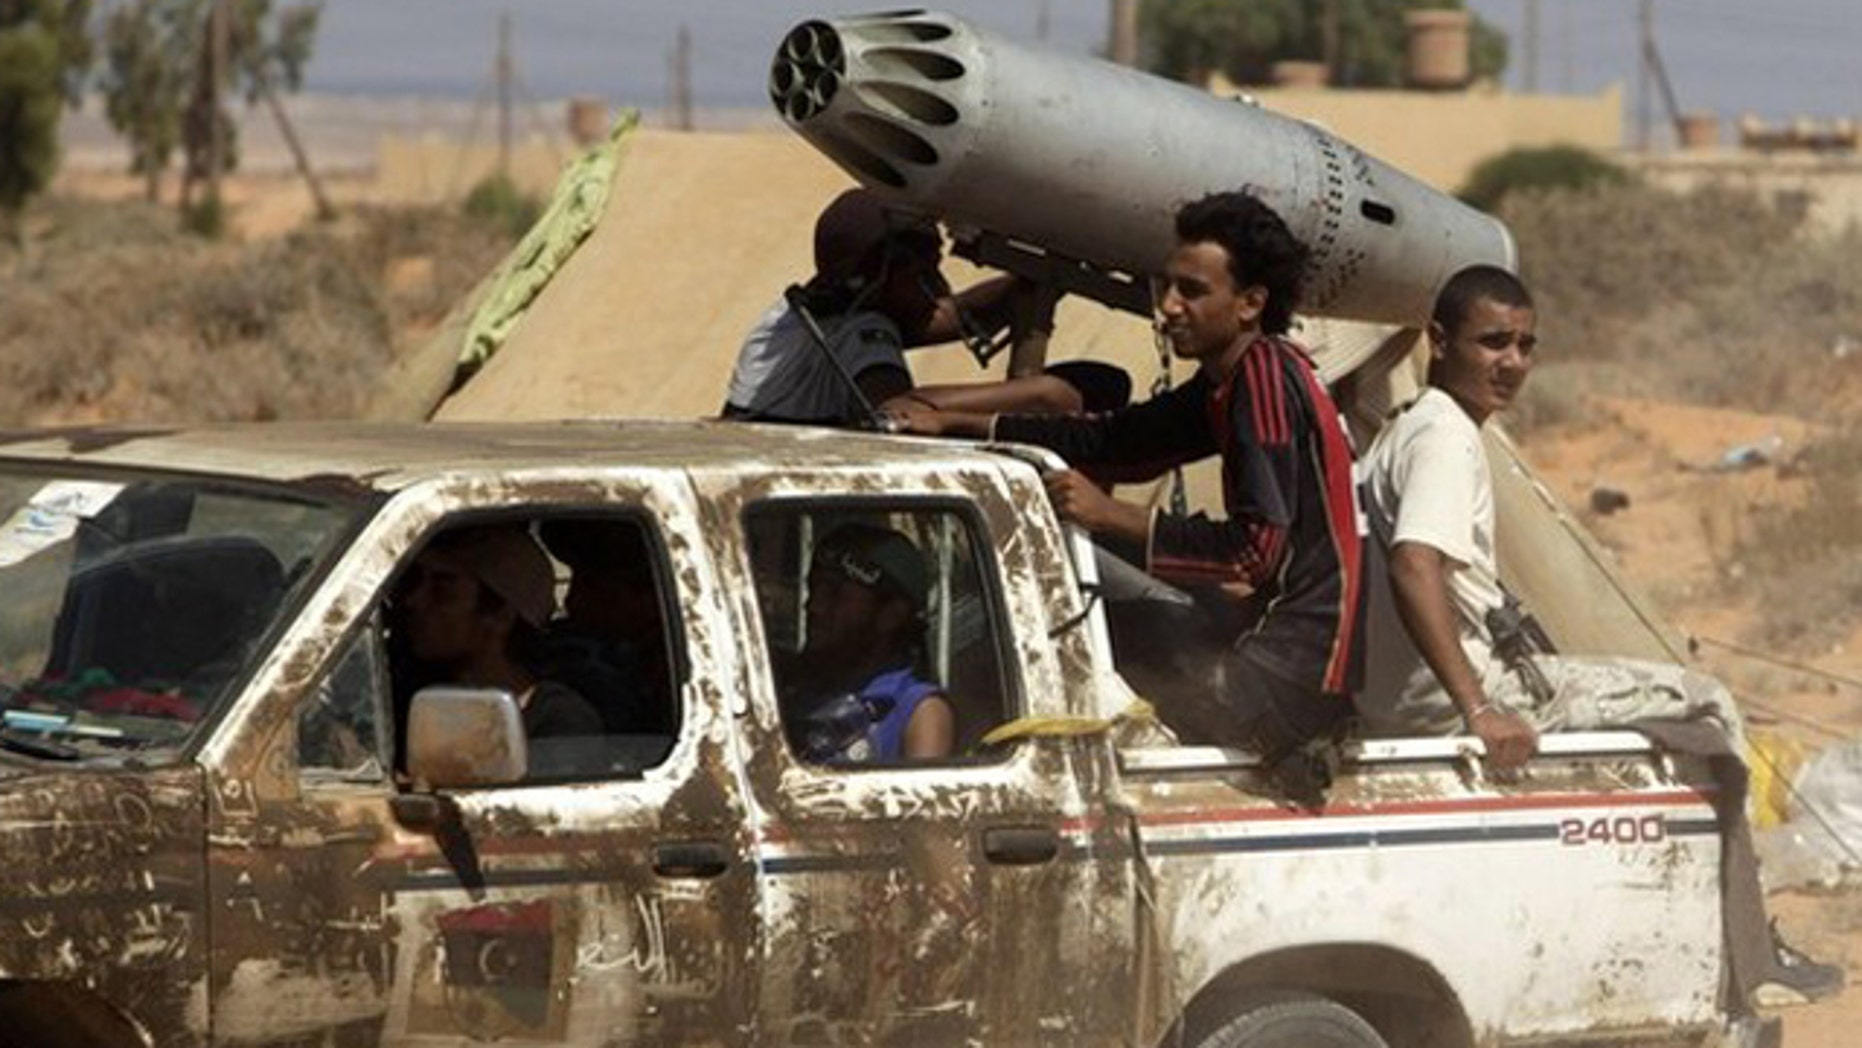 Sept. 14: Anti-Qaddafi fighters drive with a converted missile launcher from an aircraft near a check point.